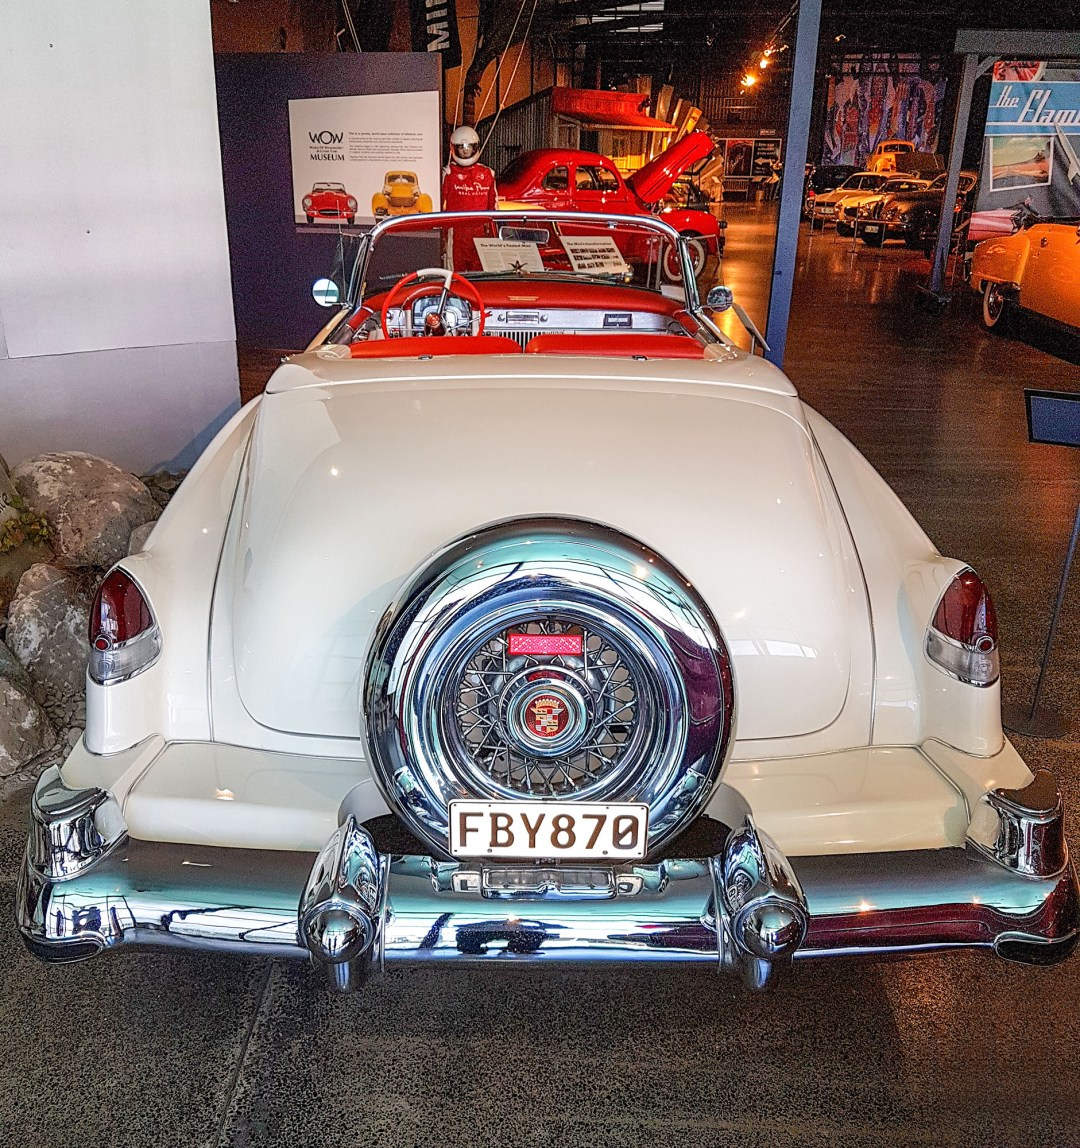 Cadillac 1953 convertible rear at WOW Classic Cars for boomervoice